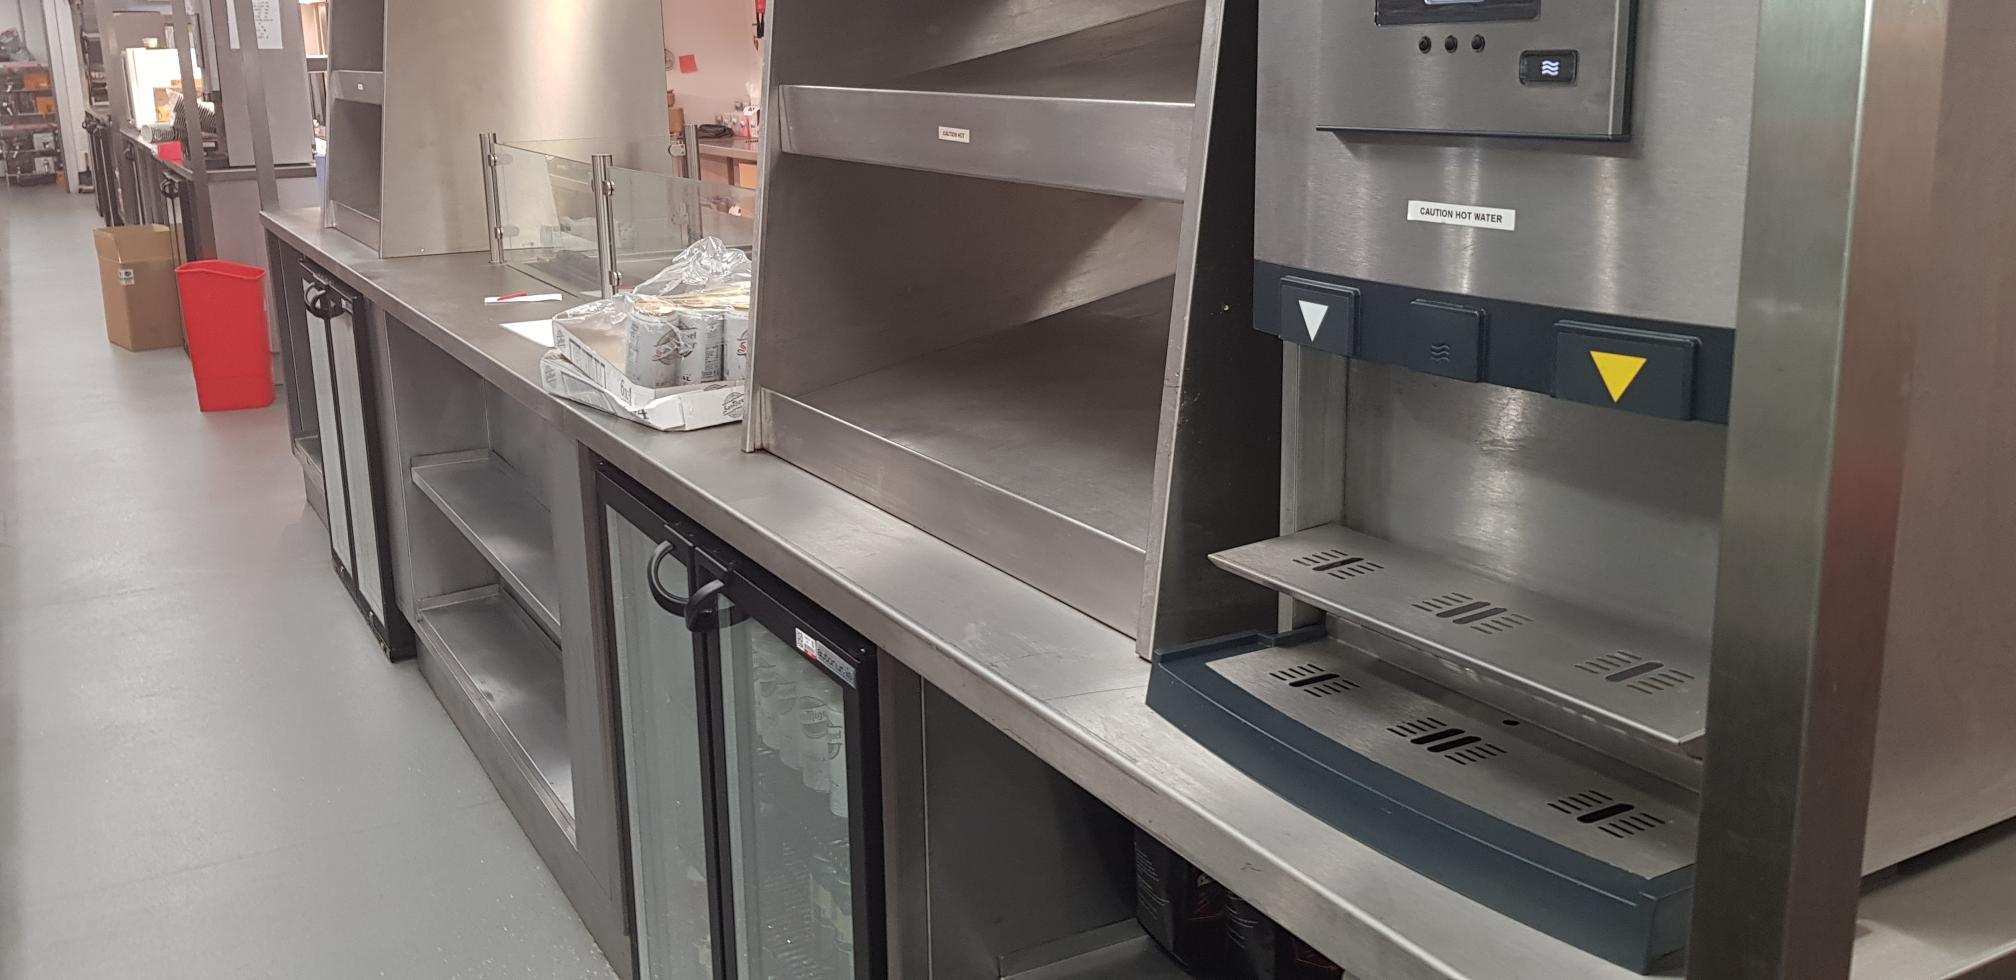 Service 2 - Anfield Liverpool FC catering 4